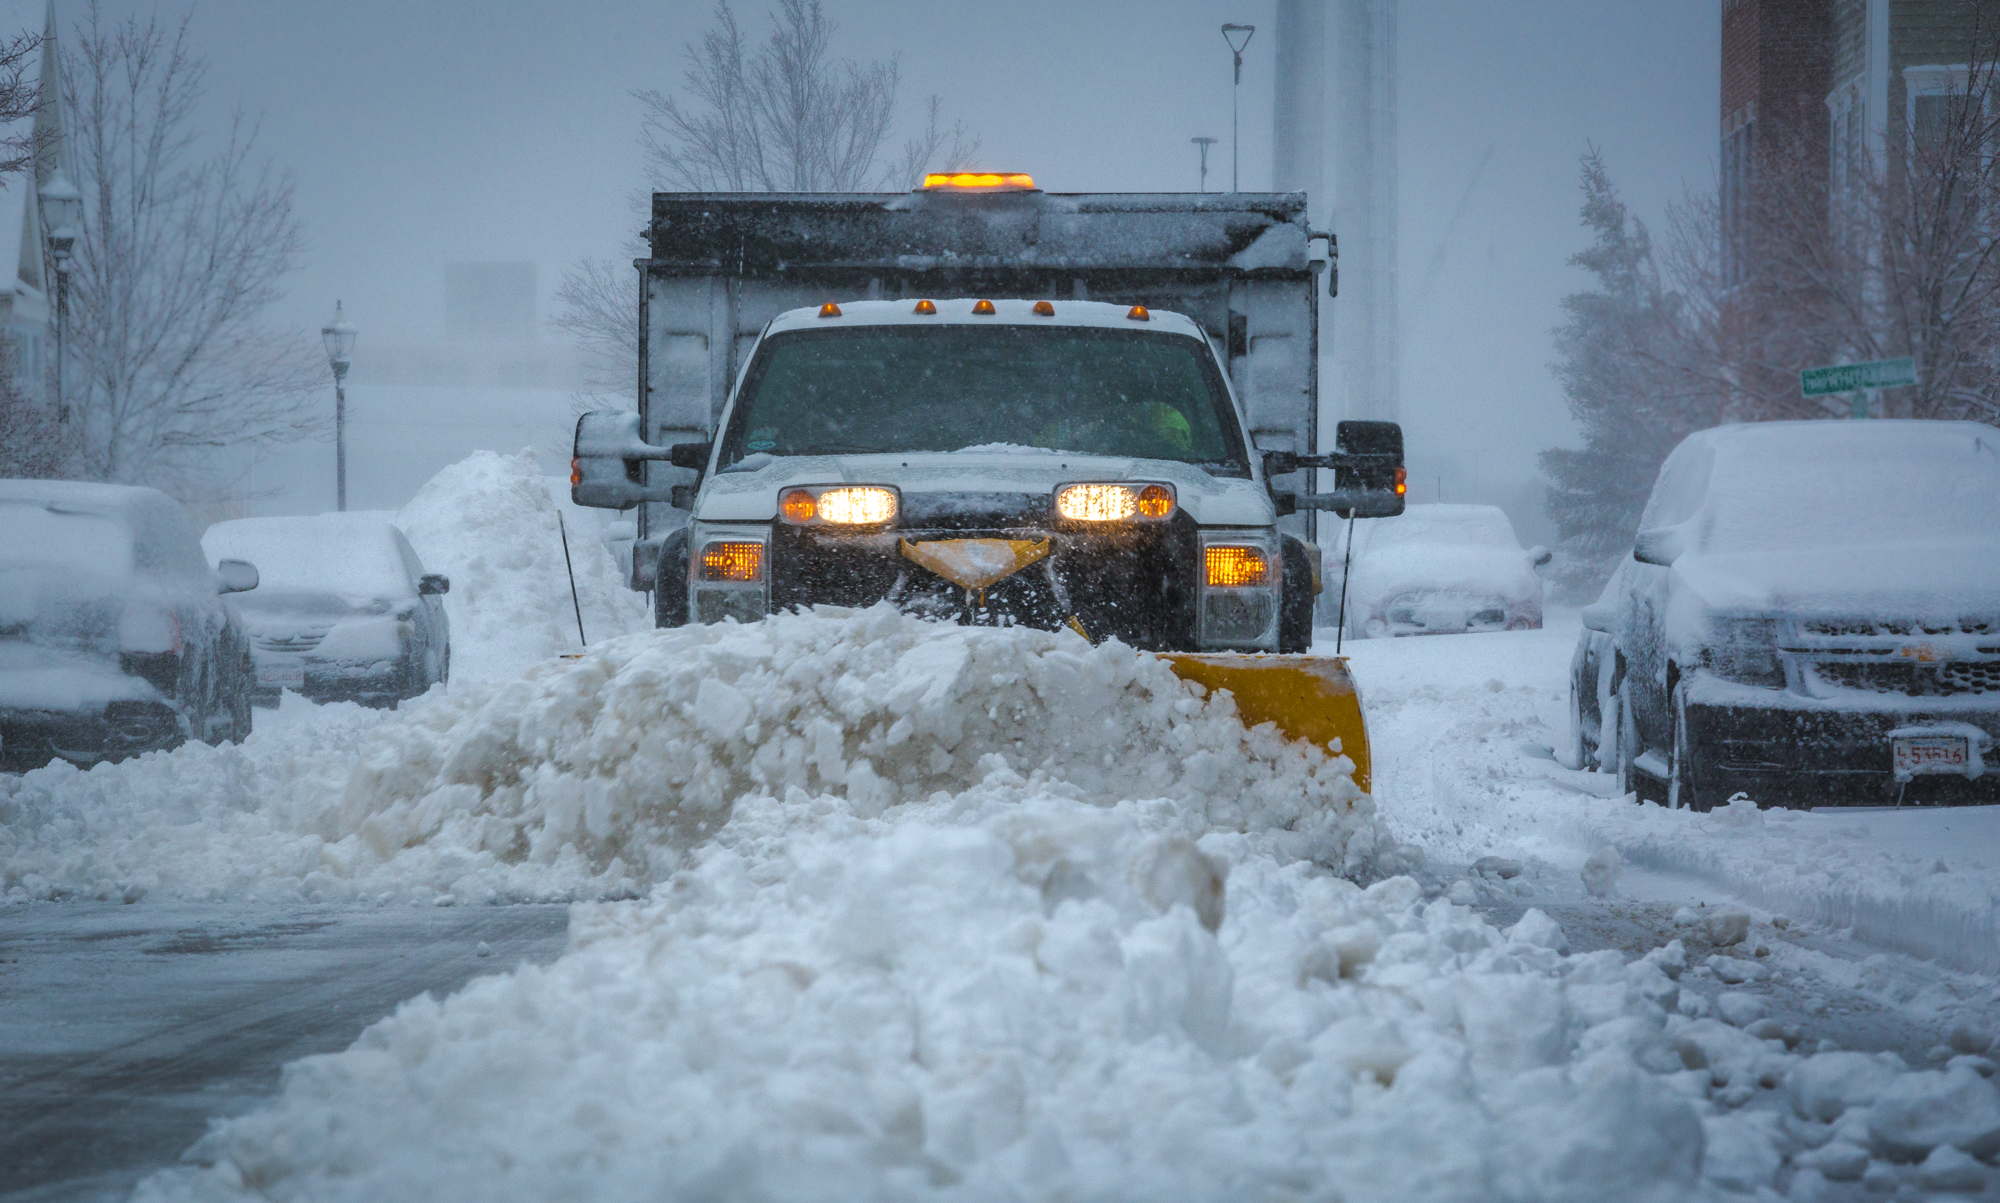 Front View of a Truck Plowing Snow